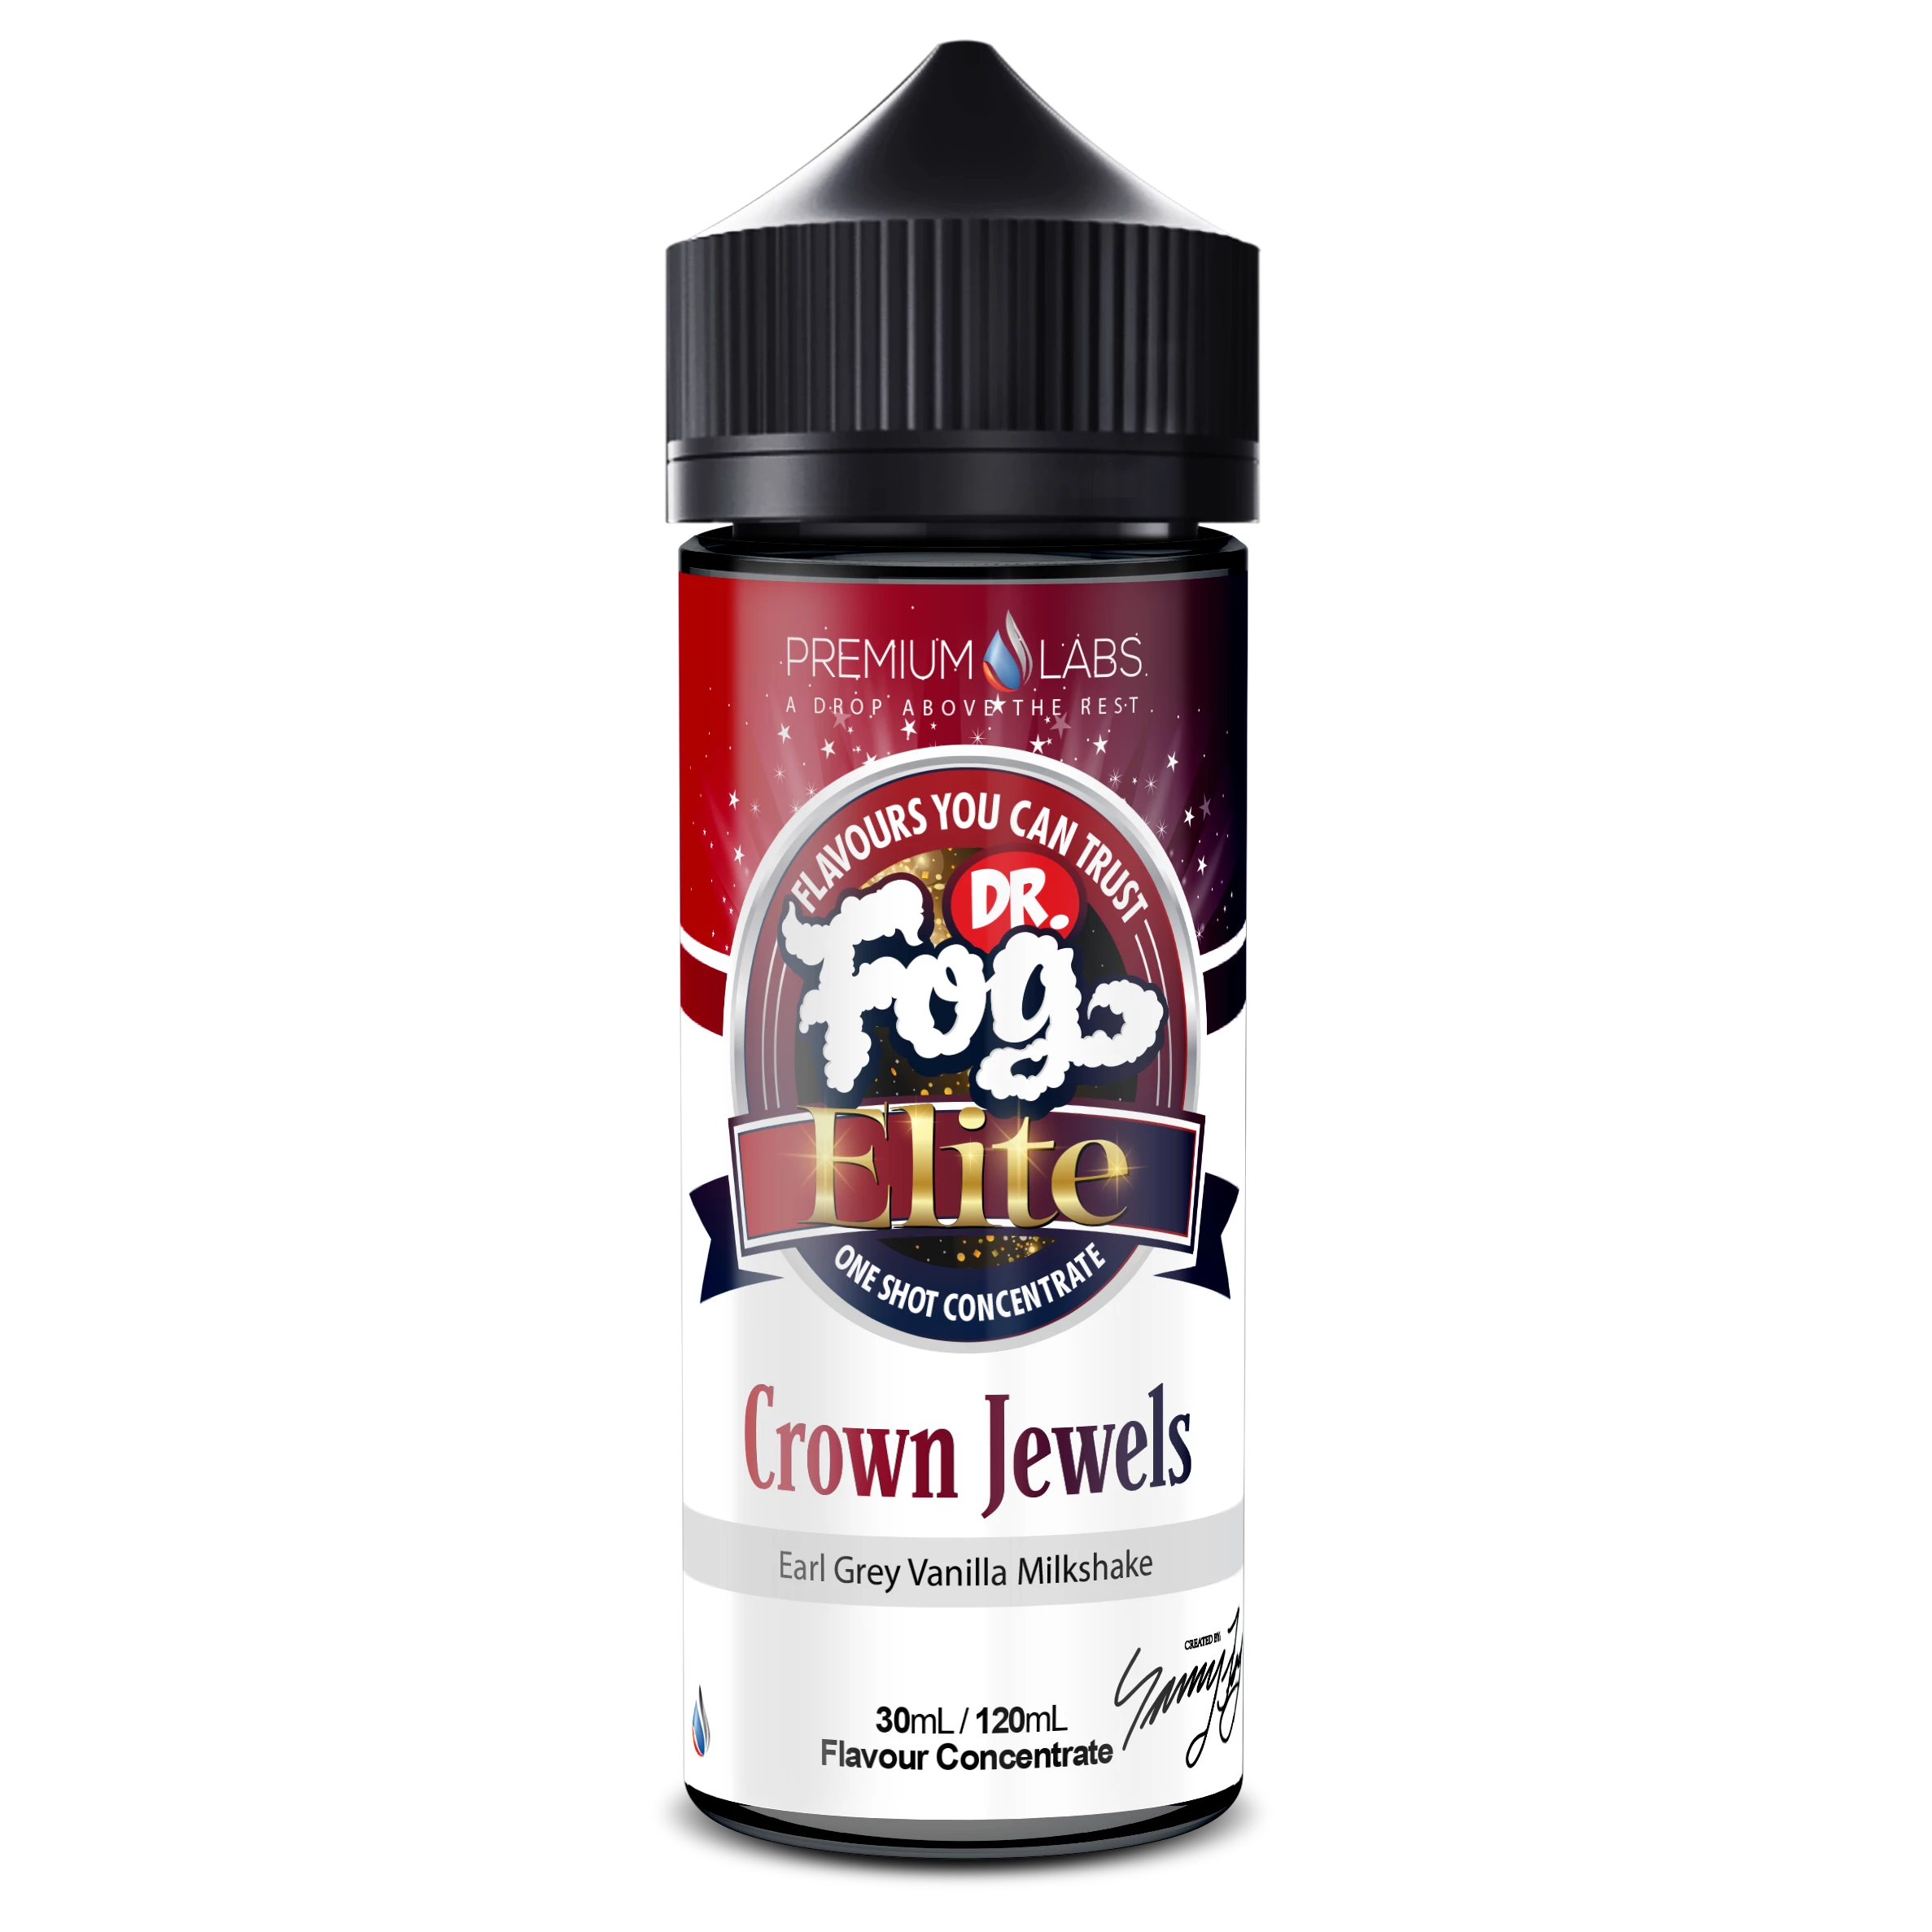 Dr Fog Elite - Crown Jewels Flavour Concentrate